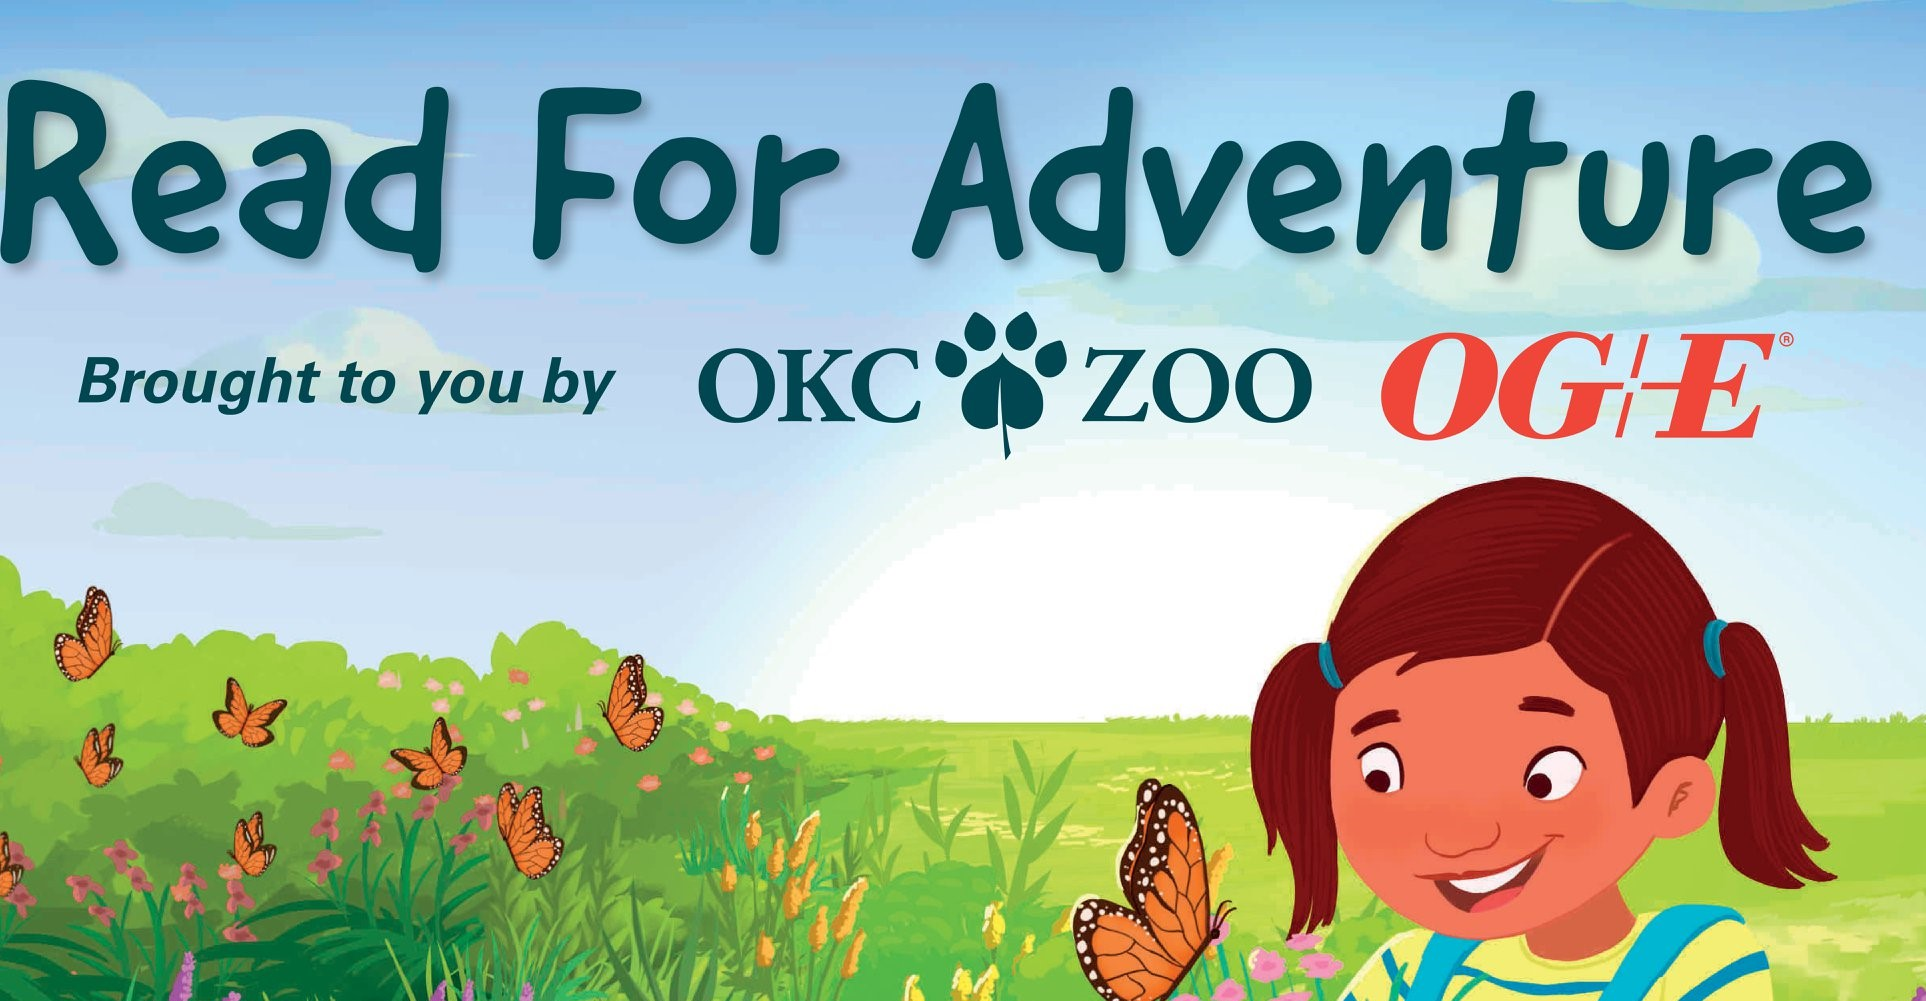 Read for Adventure brought ot you by OKC ZOO and OG and E image on small girl with butterfly from the book Junipers Butterfly Garden